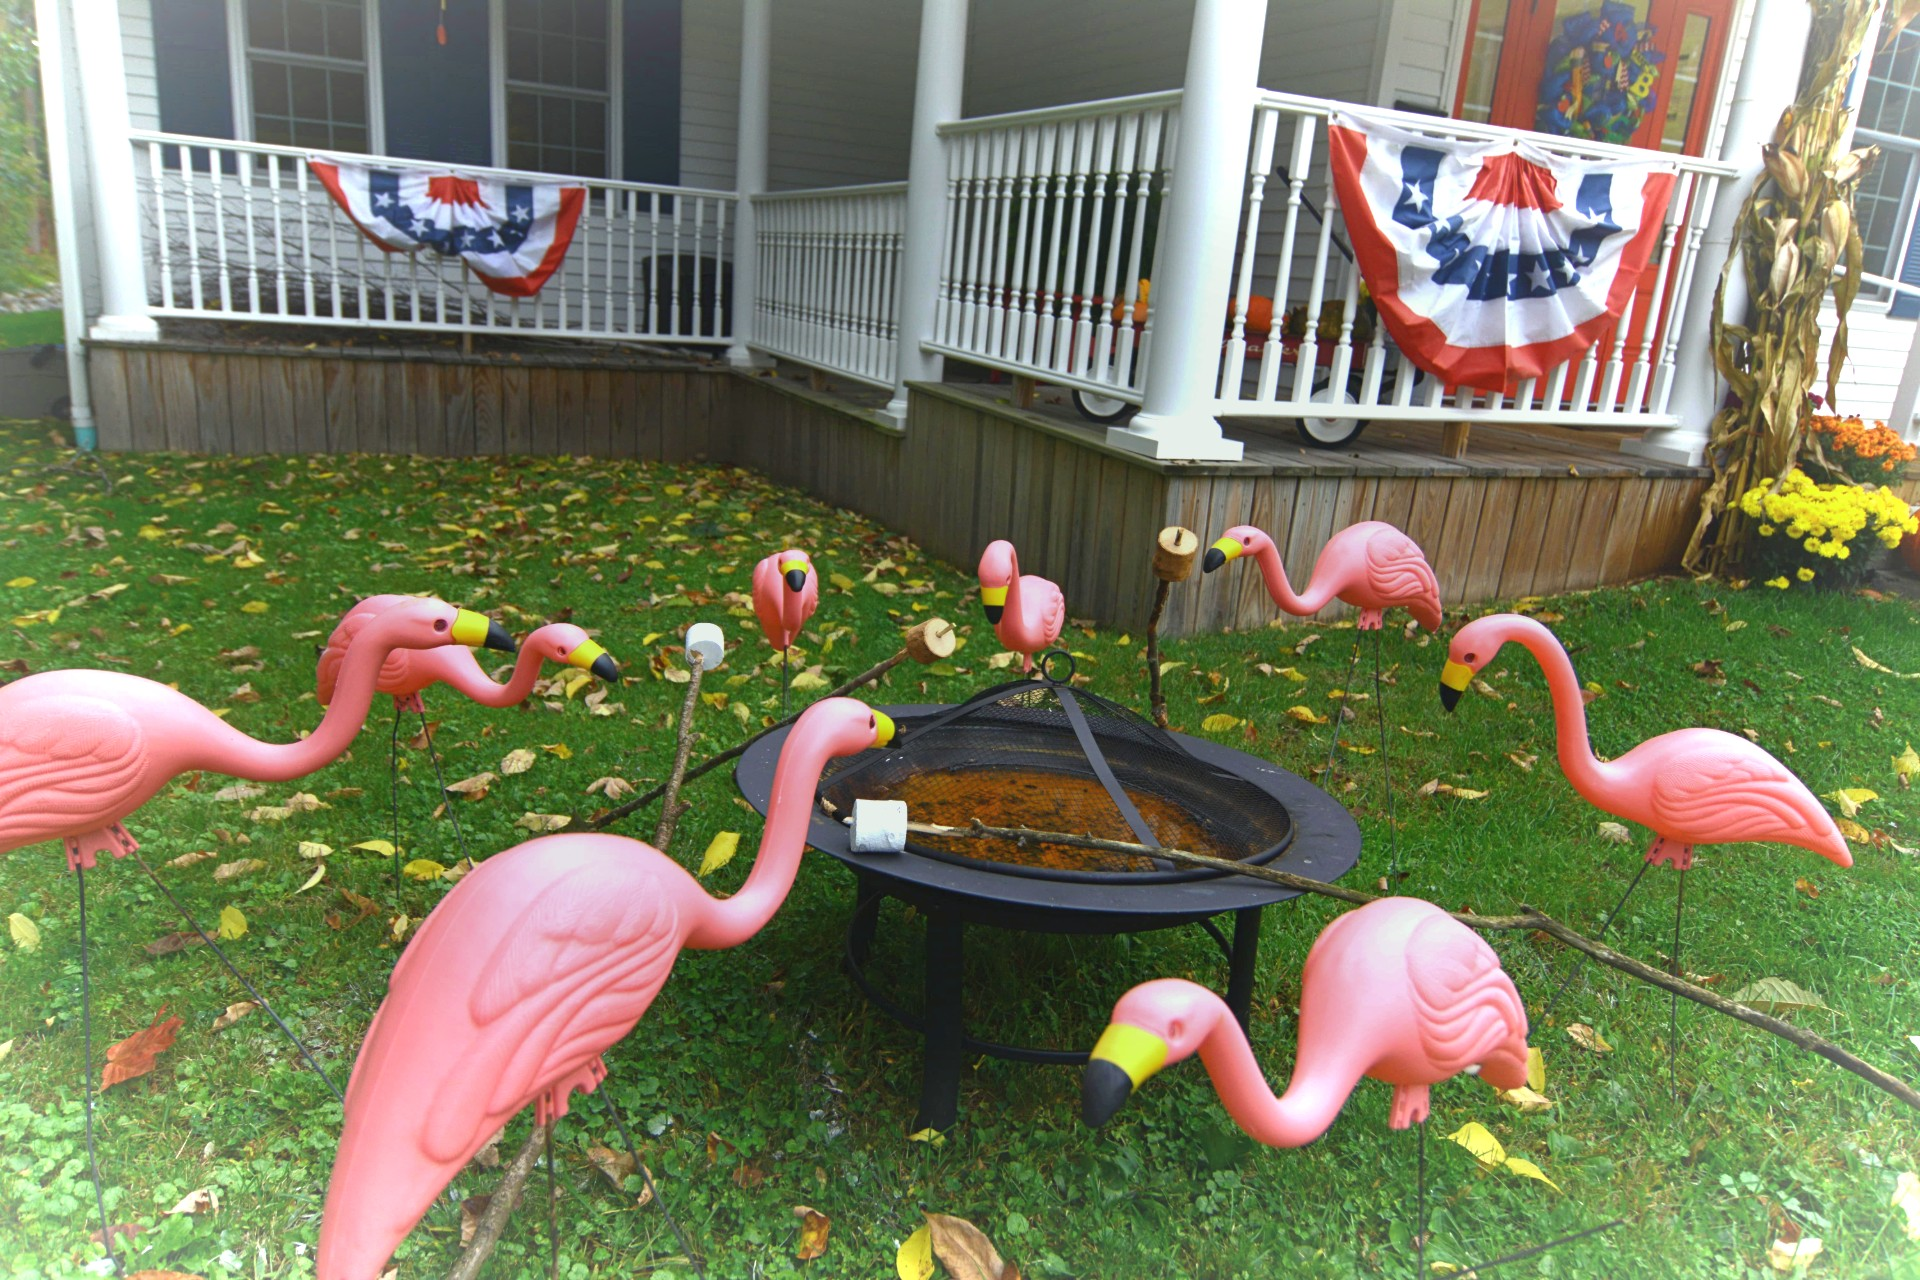 Flamingo Decorations Outside Kids Teeth Only